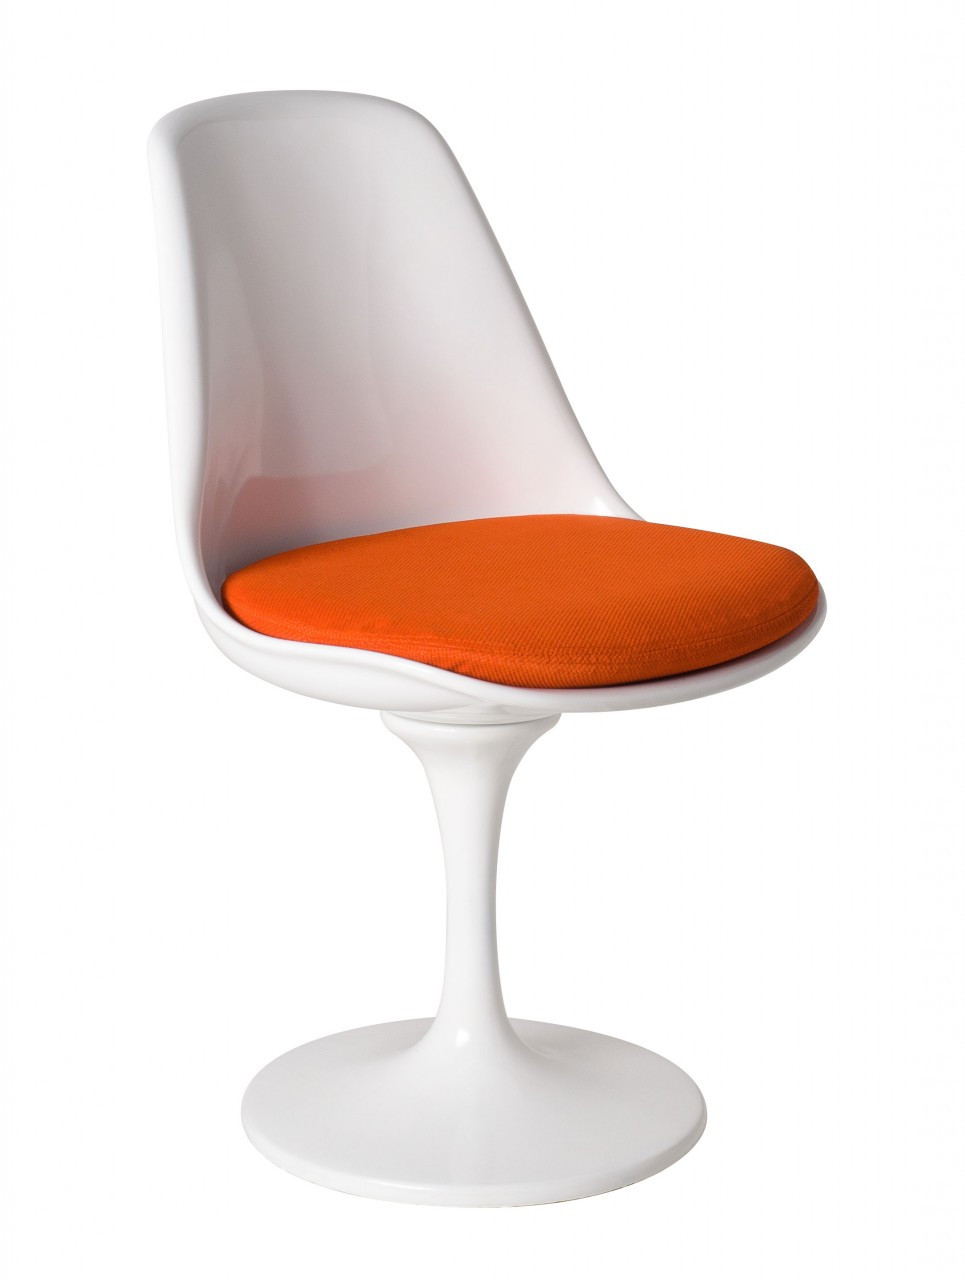 Best tulip chair reproduction - Tulip chair replica ...